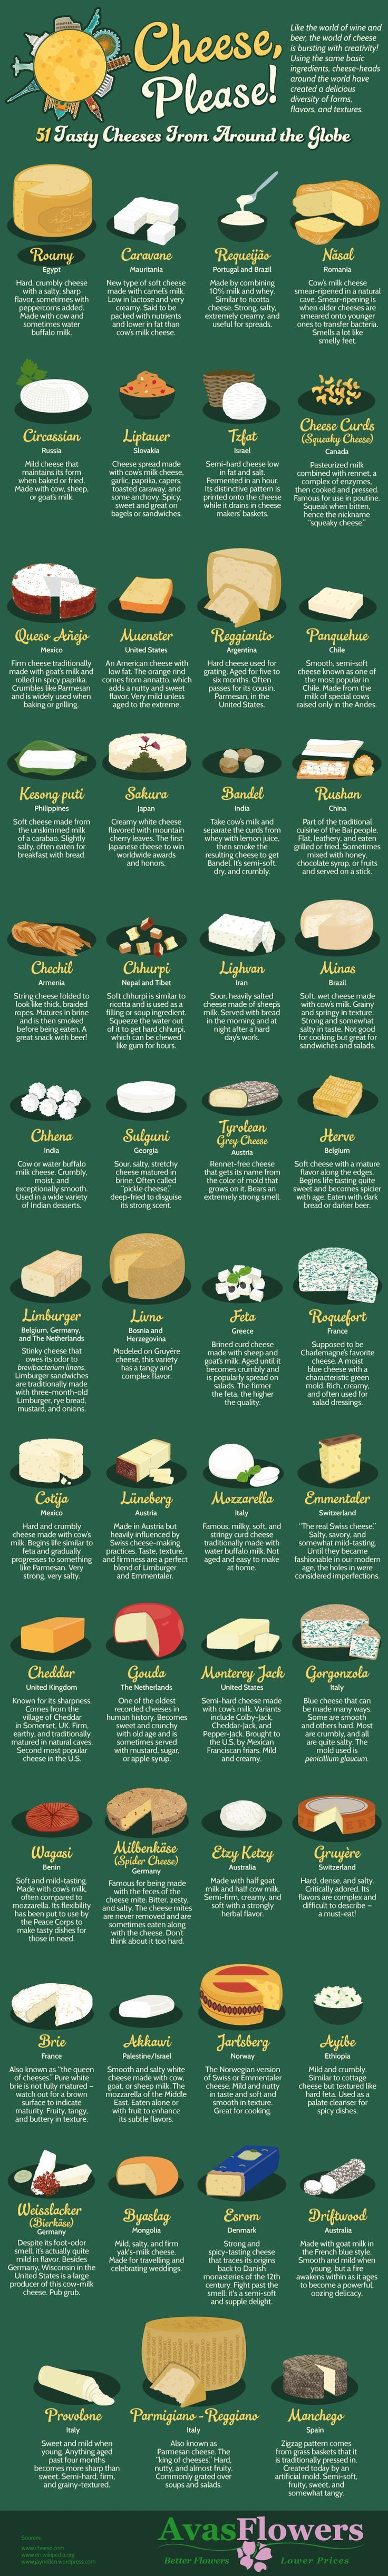 Cheese Please! 51 Tasty Cheeses From Around the Globe - www.avasflowers.net/?utm_content=bufferd1acb&utm_medium=social&utm_source=pinterest.com&utm_campaign=buffer - Infographic